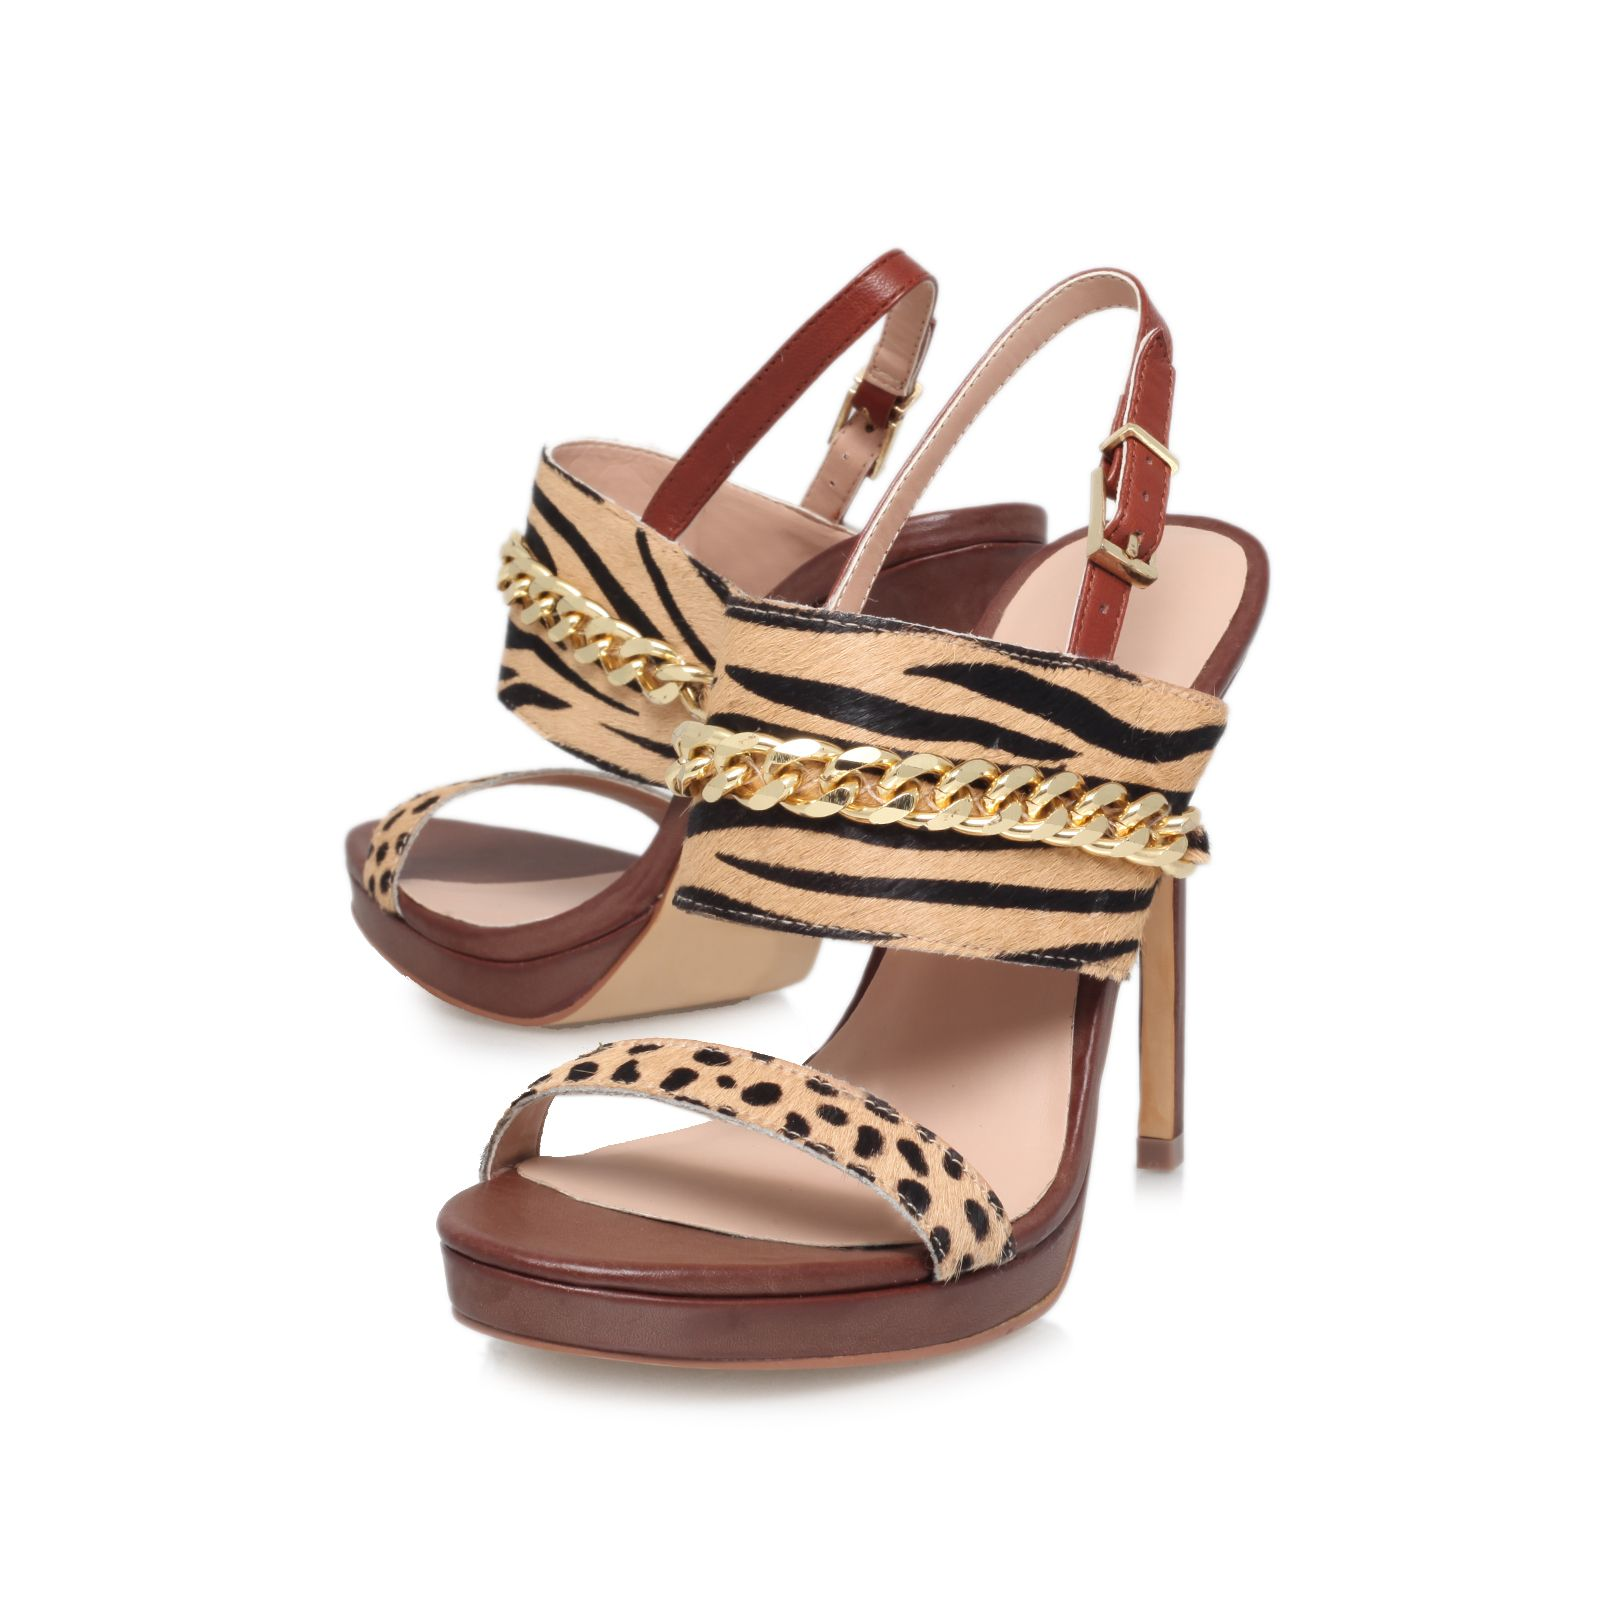 Hectic high heel sandals